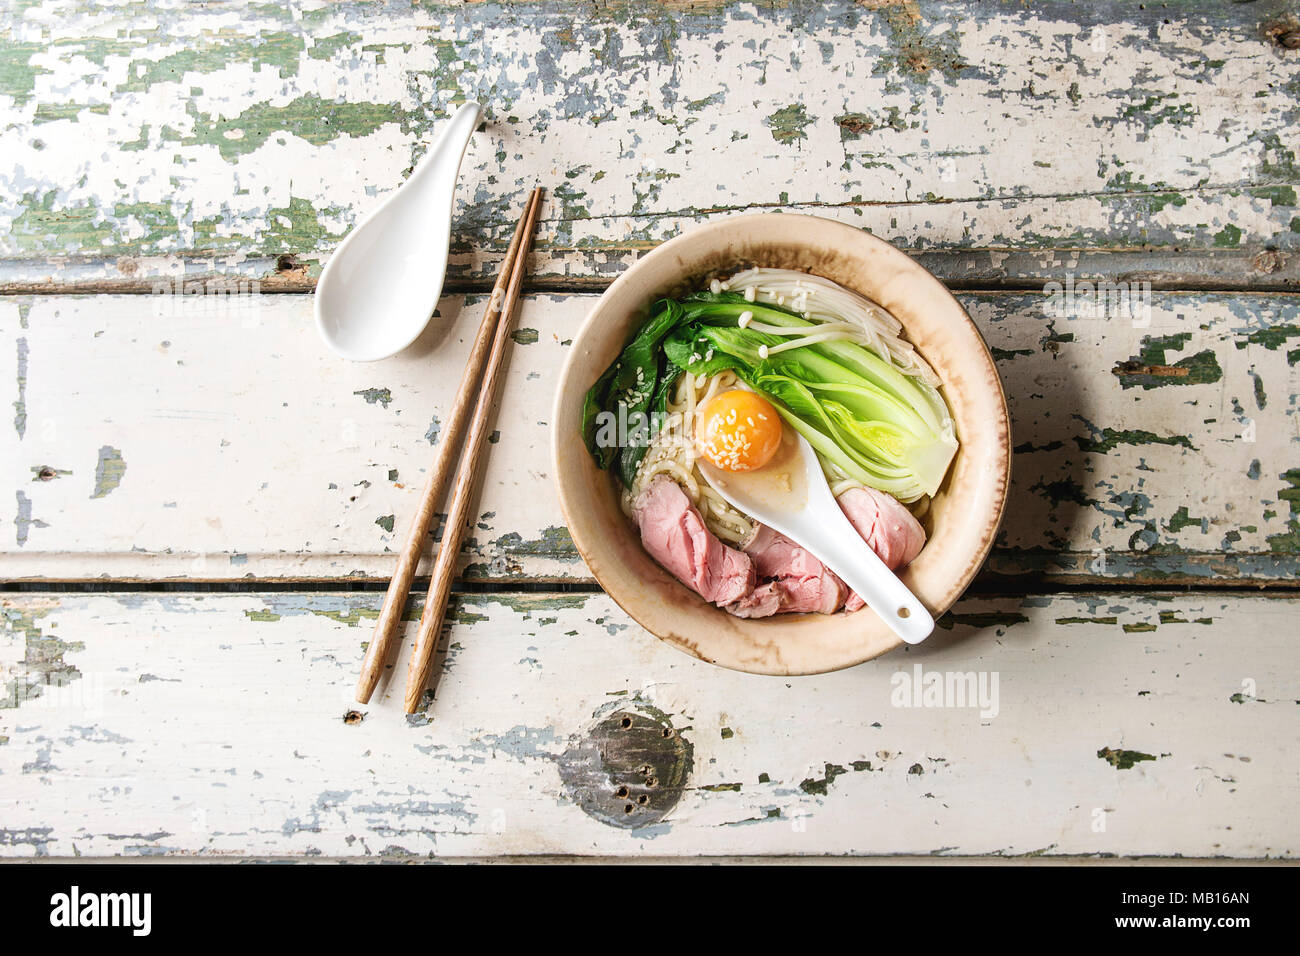 Asian dish udon noodles with egg yolk, sesame, mushrooms, boc choy, sliced sous vide cooked meat served in ceramic bowl with spoon and chopsticks over Stock Photo